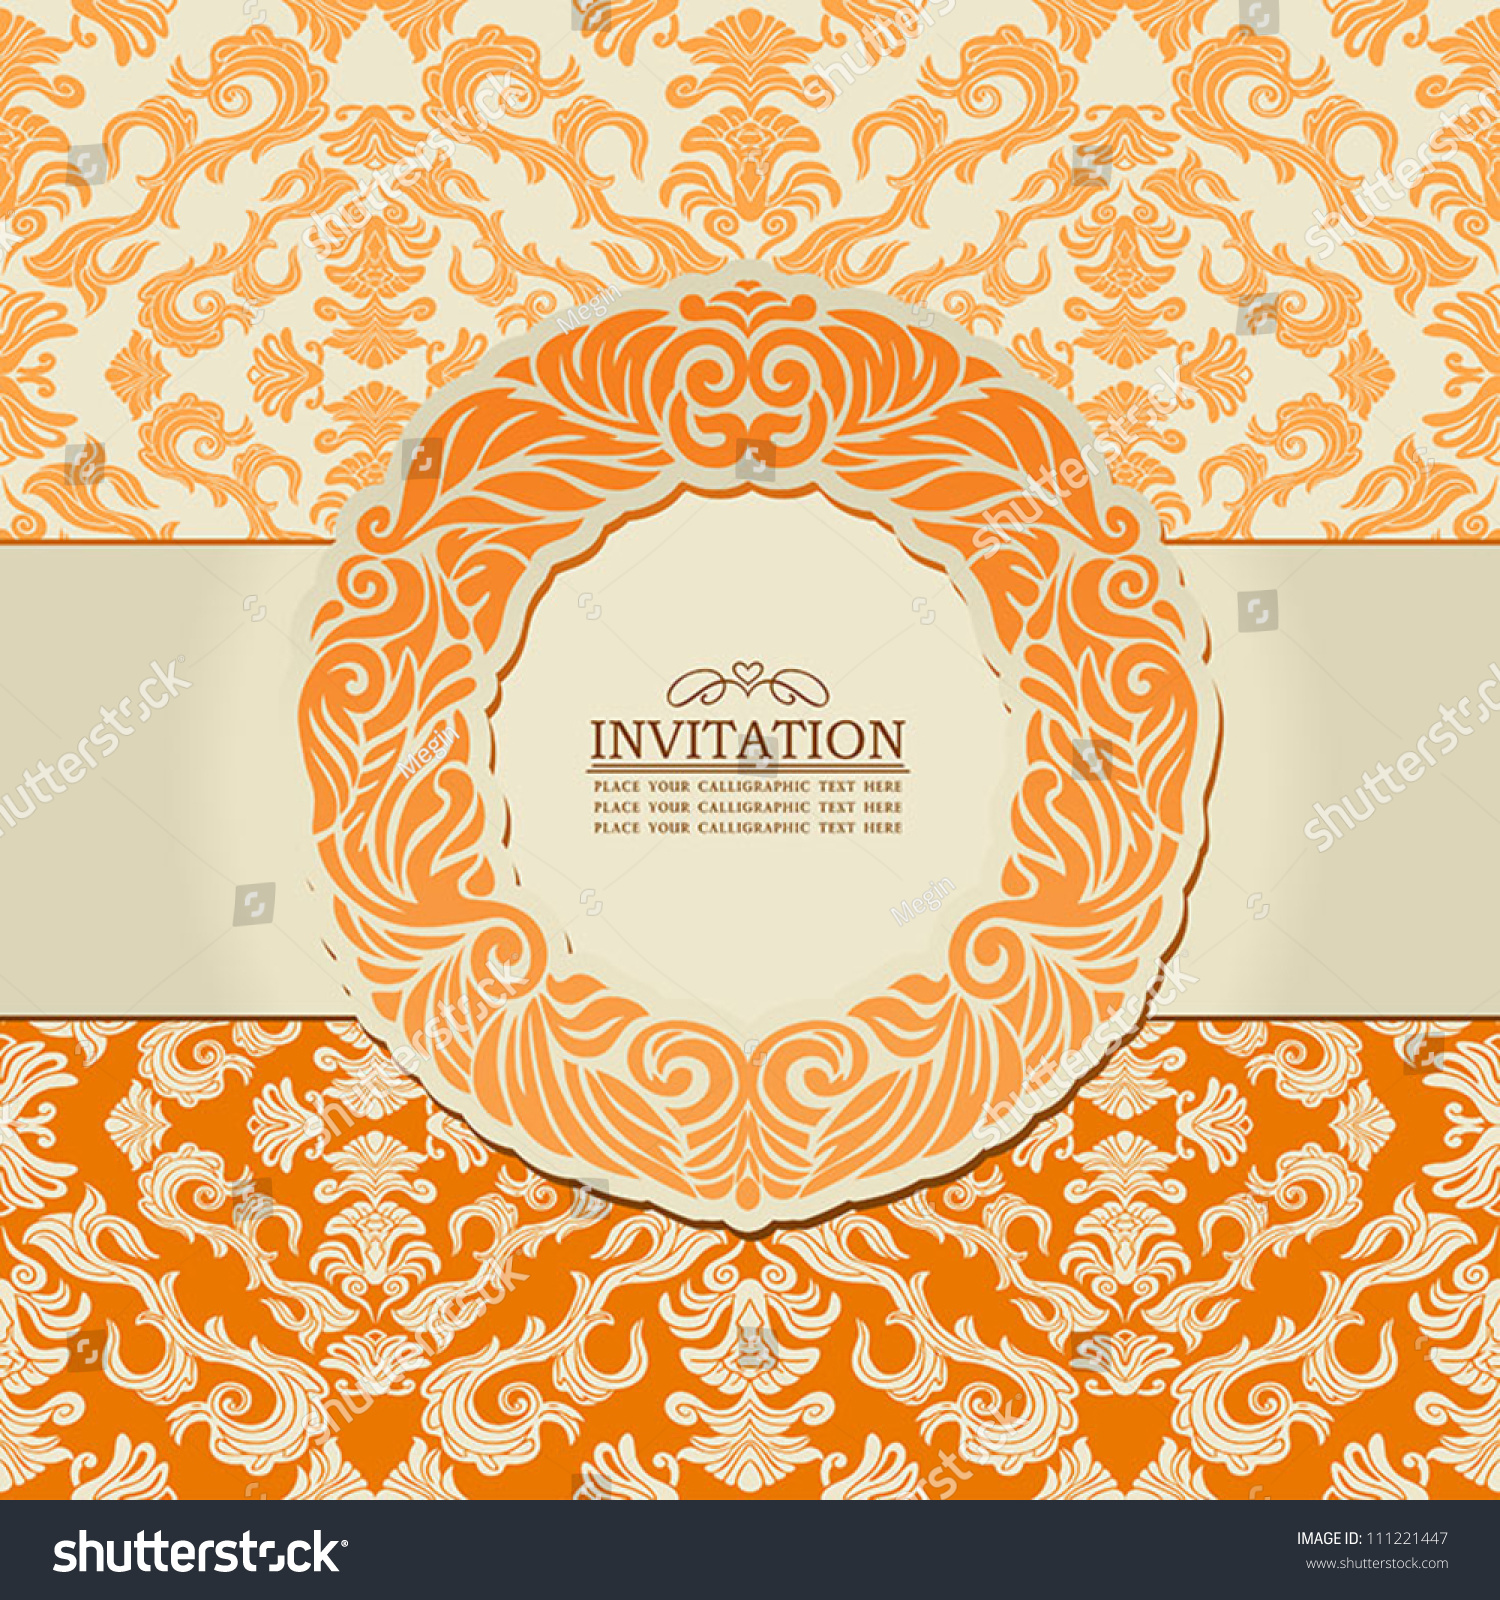 Vintage background ornate baroque pattern vector illustration stock -  Vectors Illustrations Footage Music Abstract Leaf Background Exclusive Creative Ornament Ornate Baroque Vintage Orange